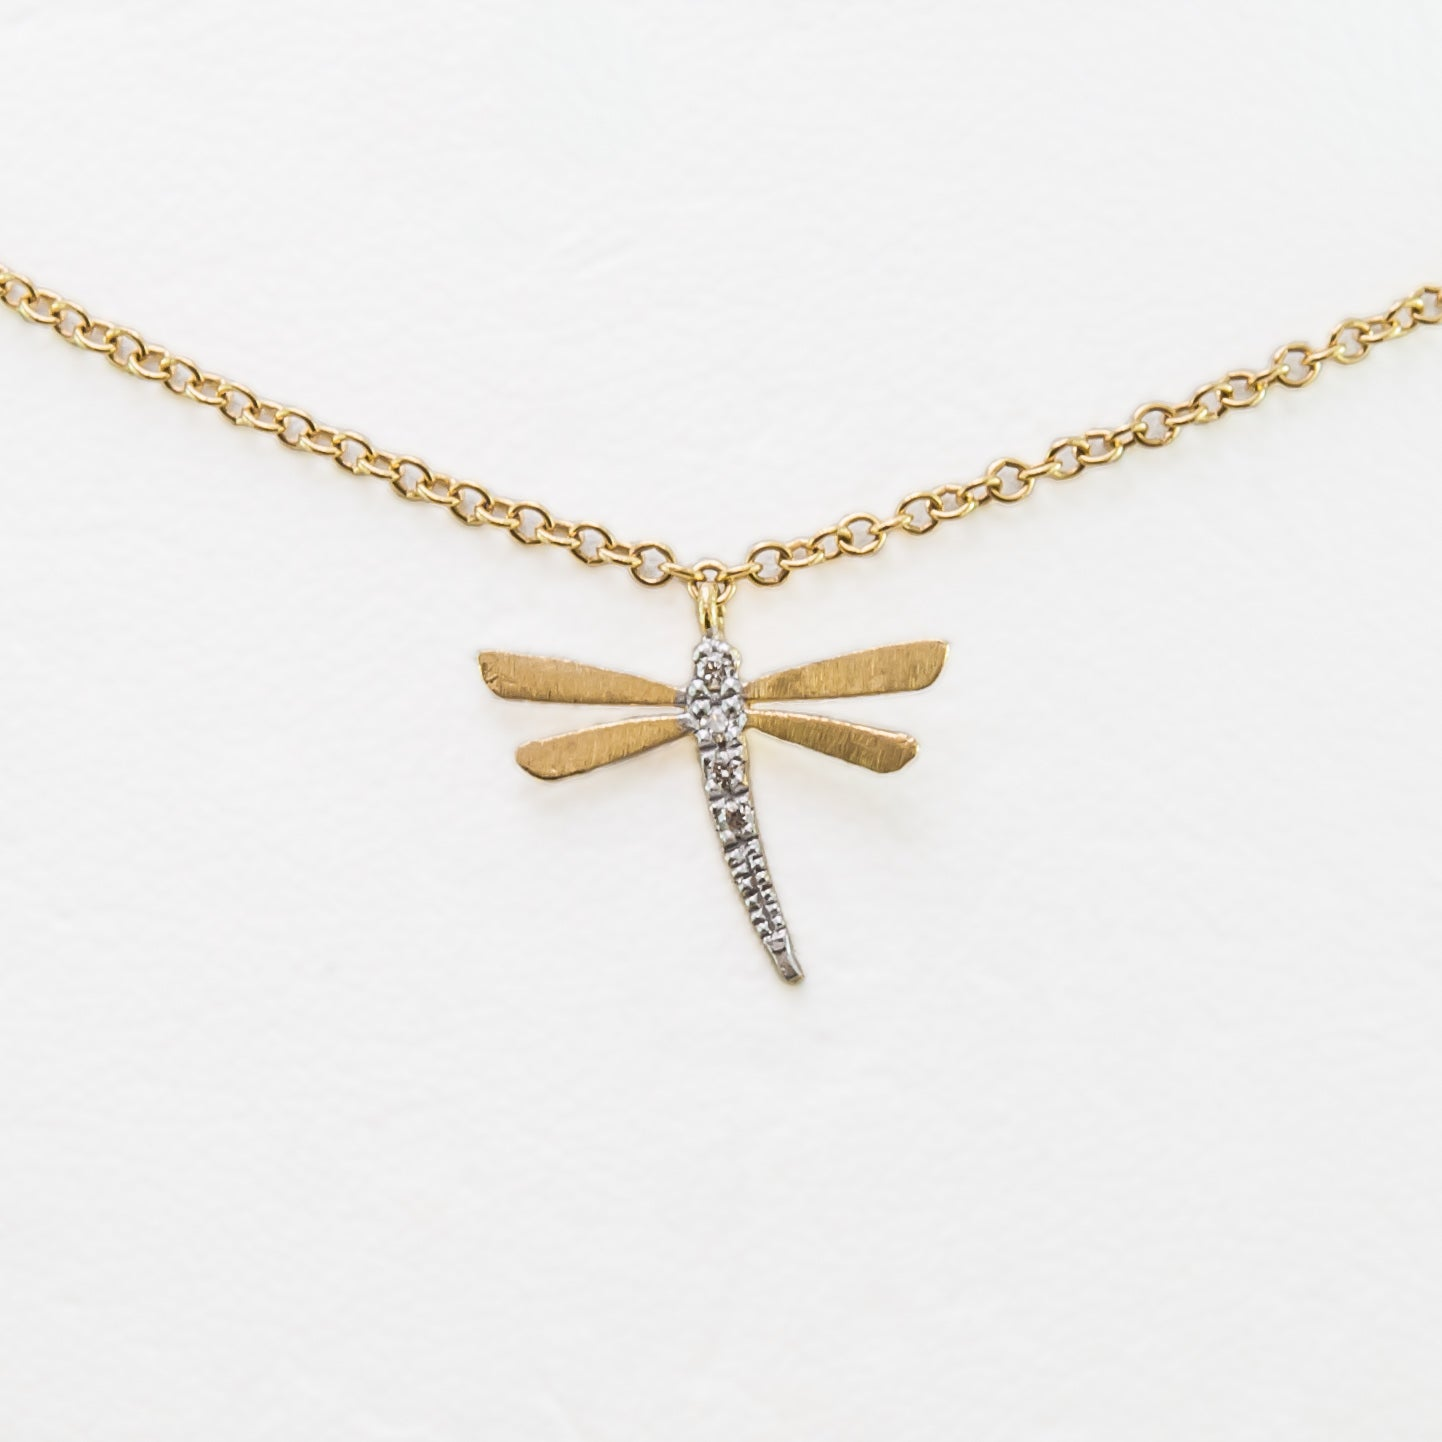 qlt cable chain gold filled dragonfly wid inch on pendant p an hei prod necklace tone